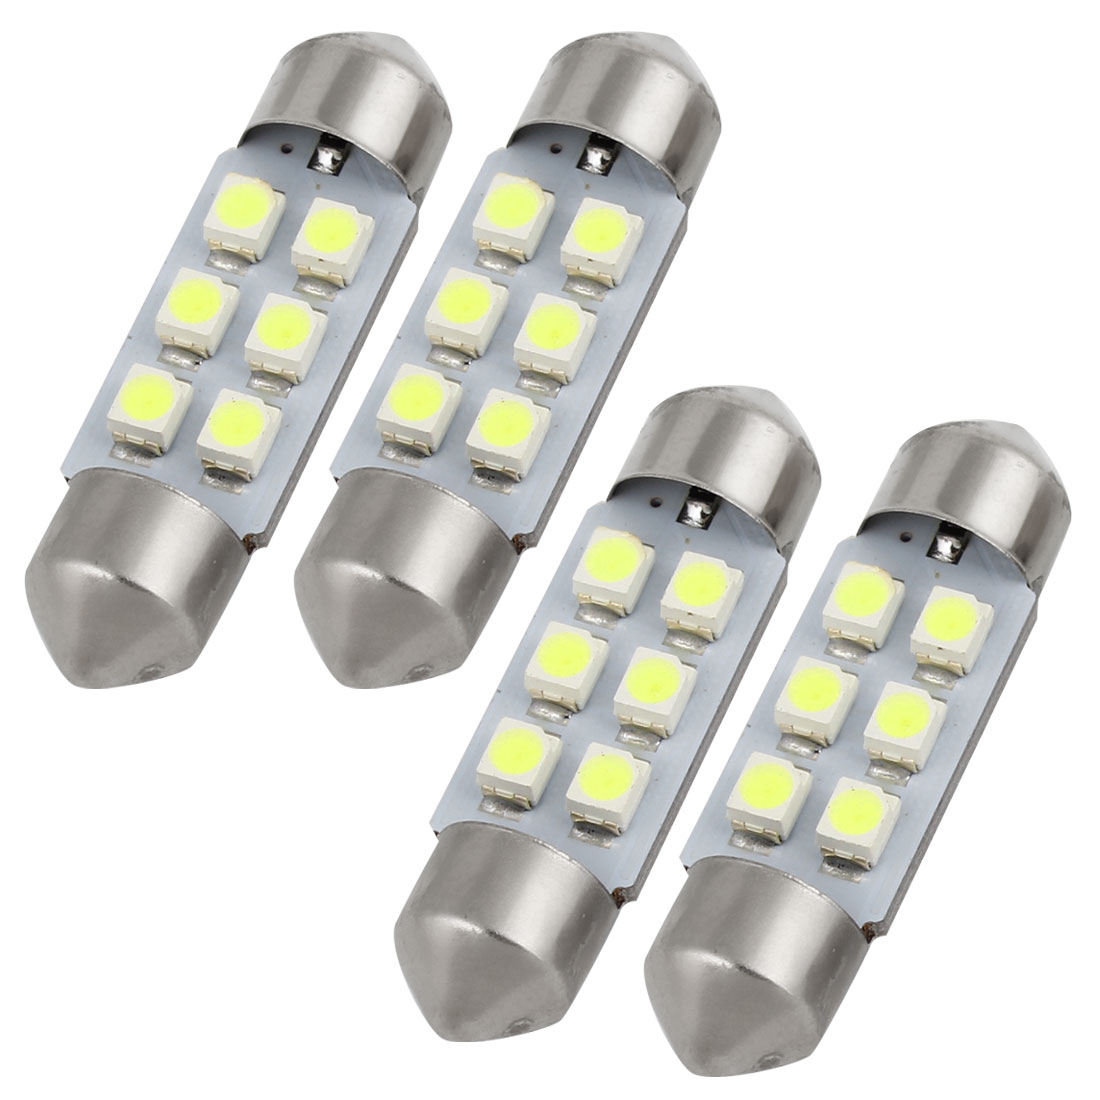 4pcs 36mm 3528 SMD 6-LED Festoon Map Reading Light Lamp White DE3425 Internal